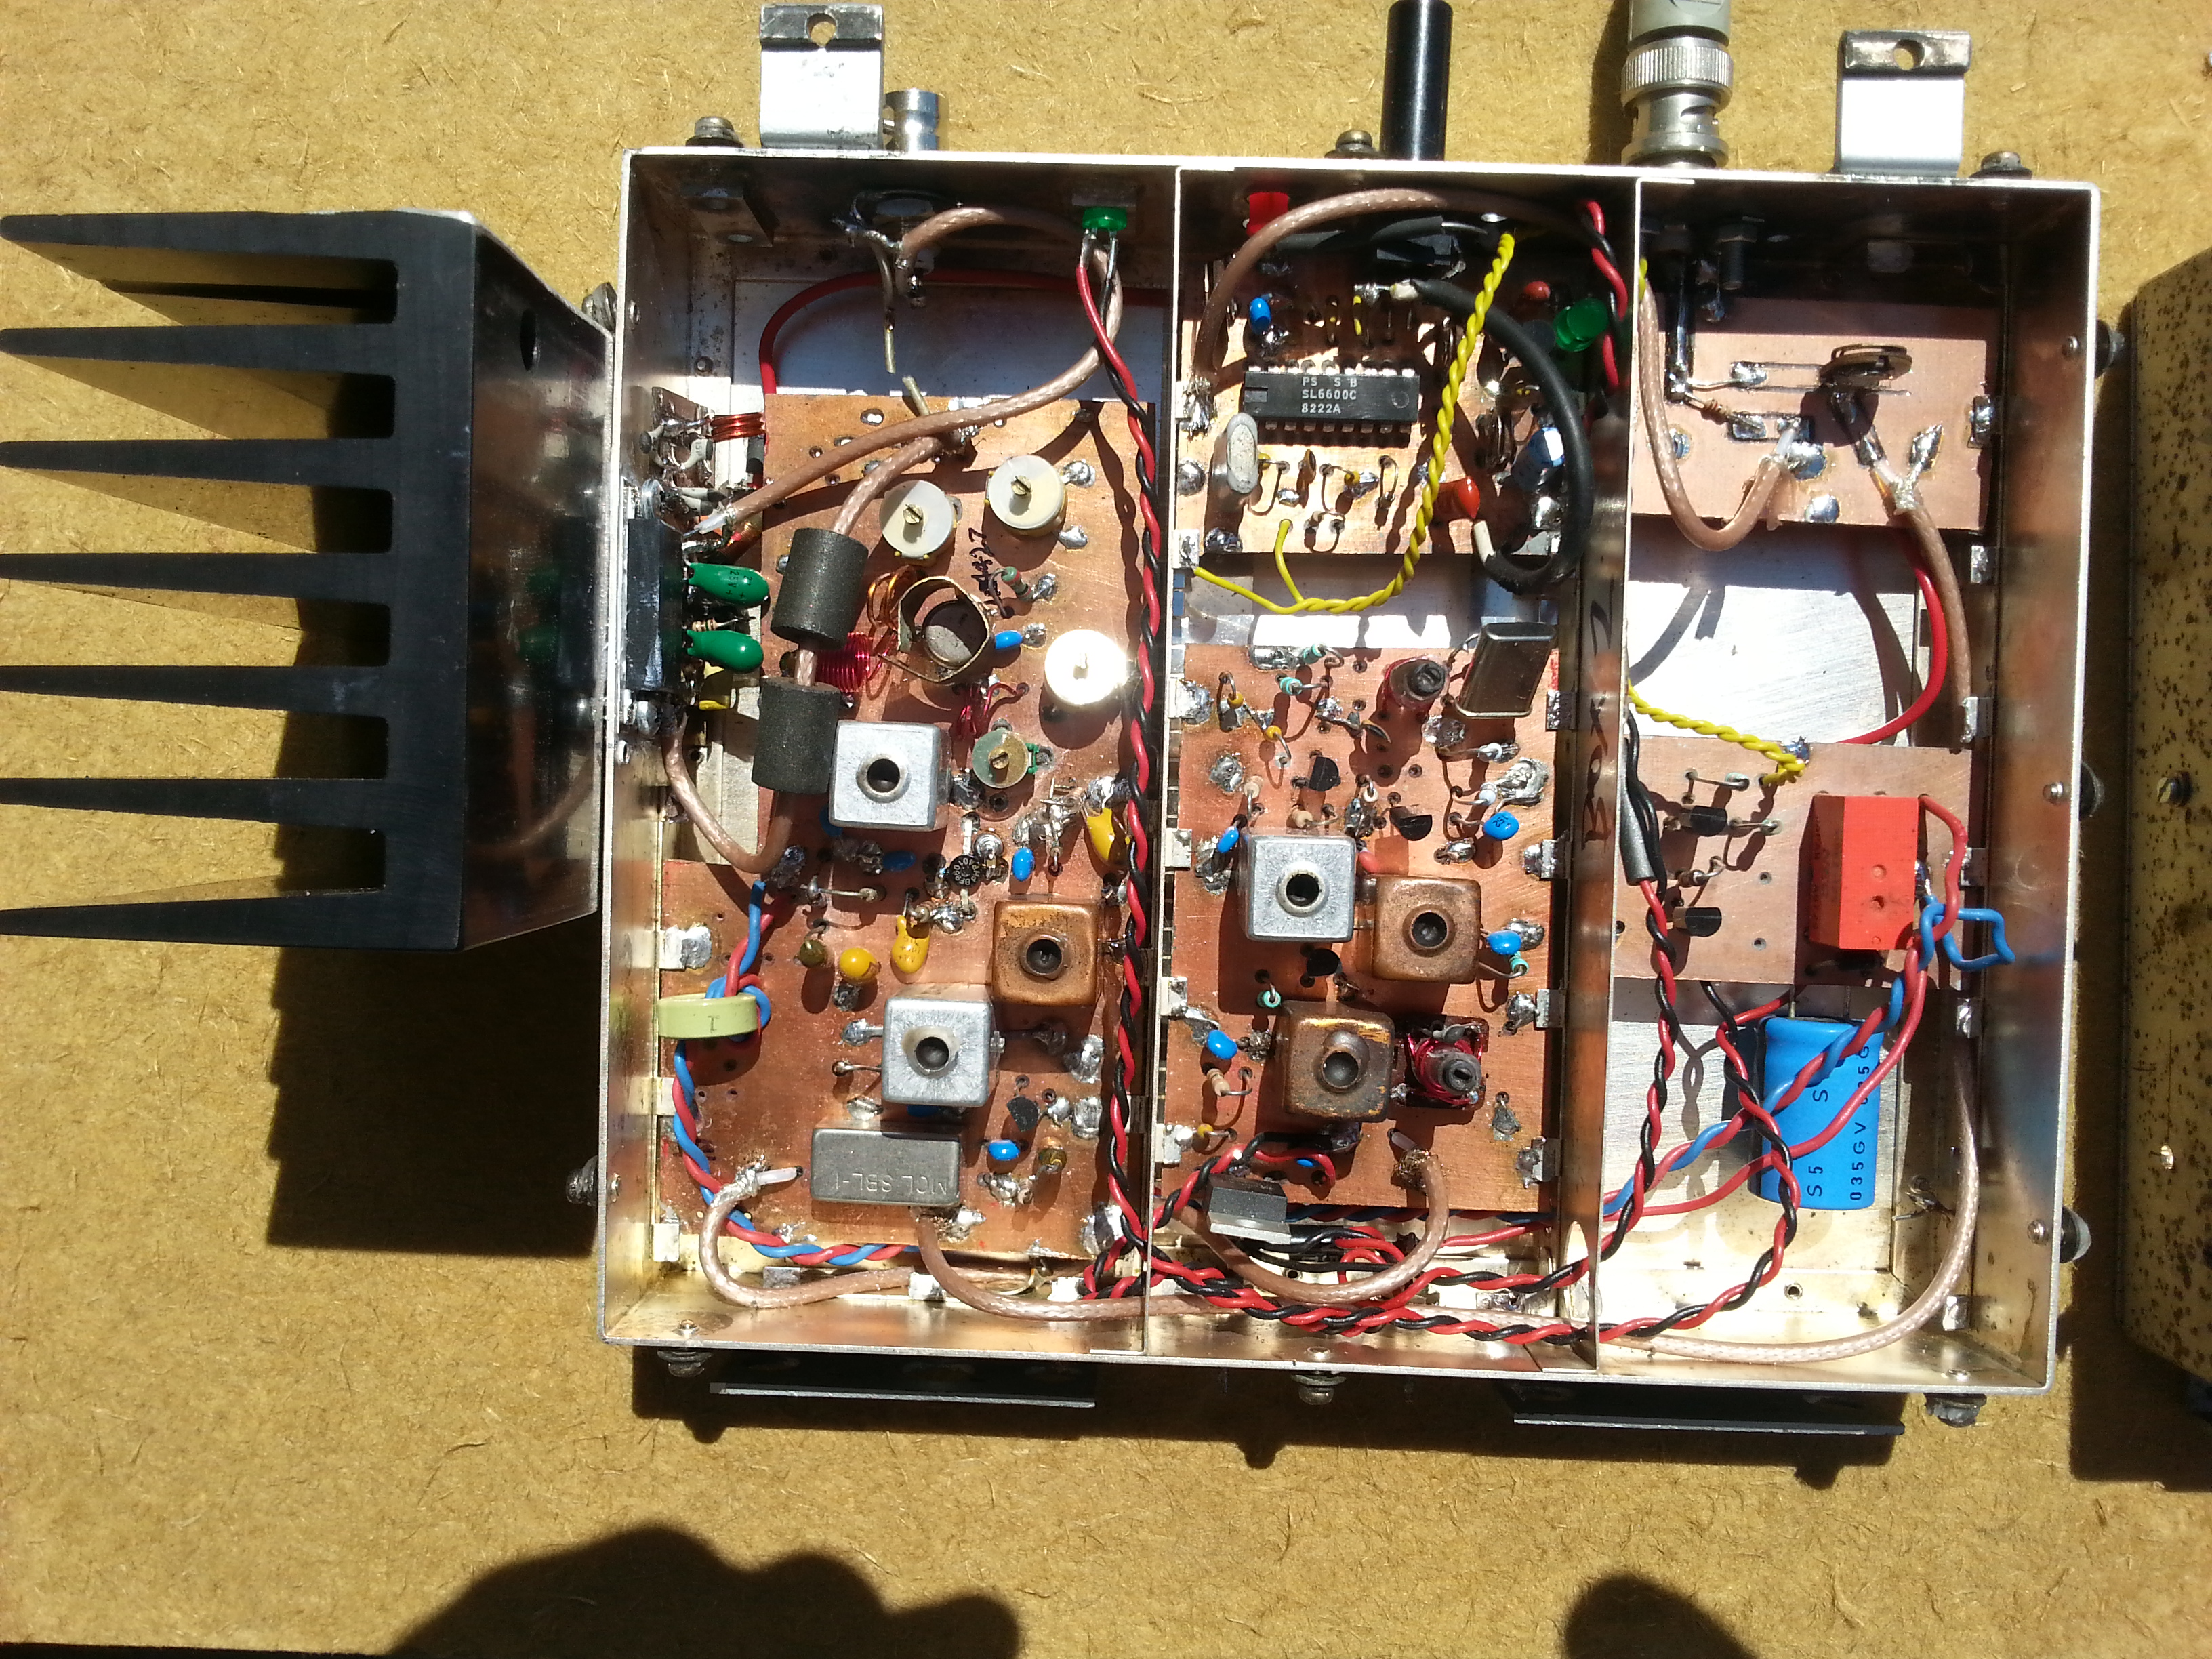 Rotorua Linear Repeater Mk2 Rf Input Receiver With Bandpass Filter Switch Circuit Control Output Swept Response